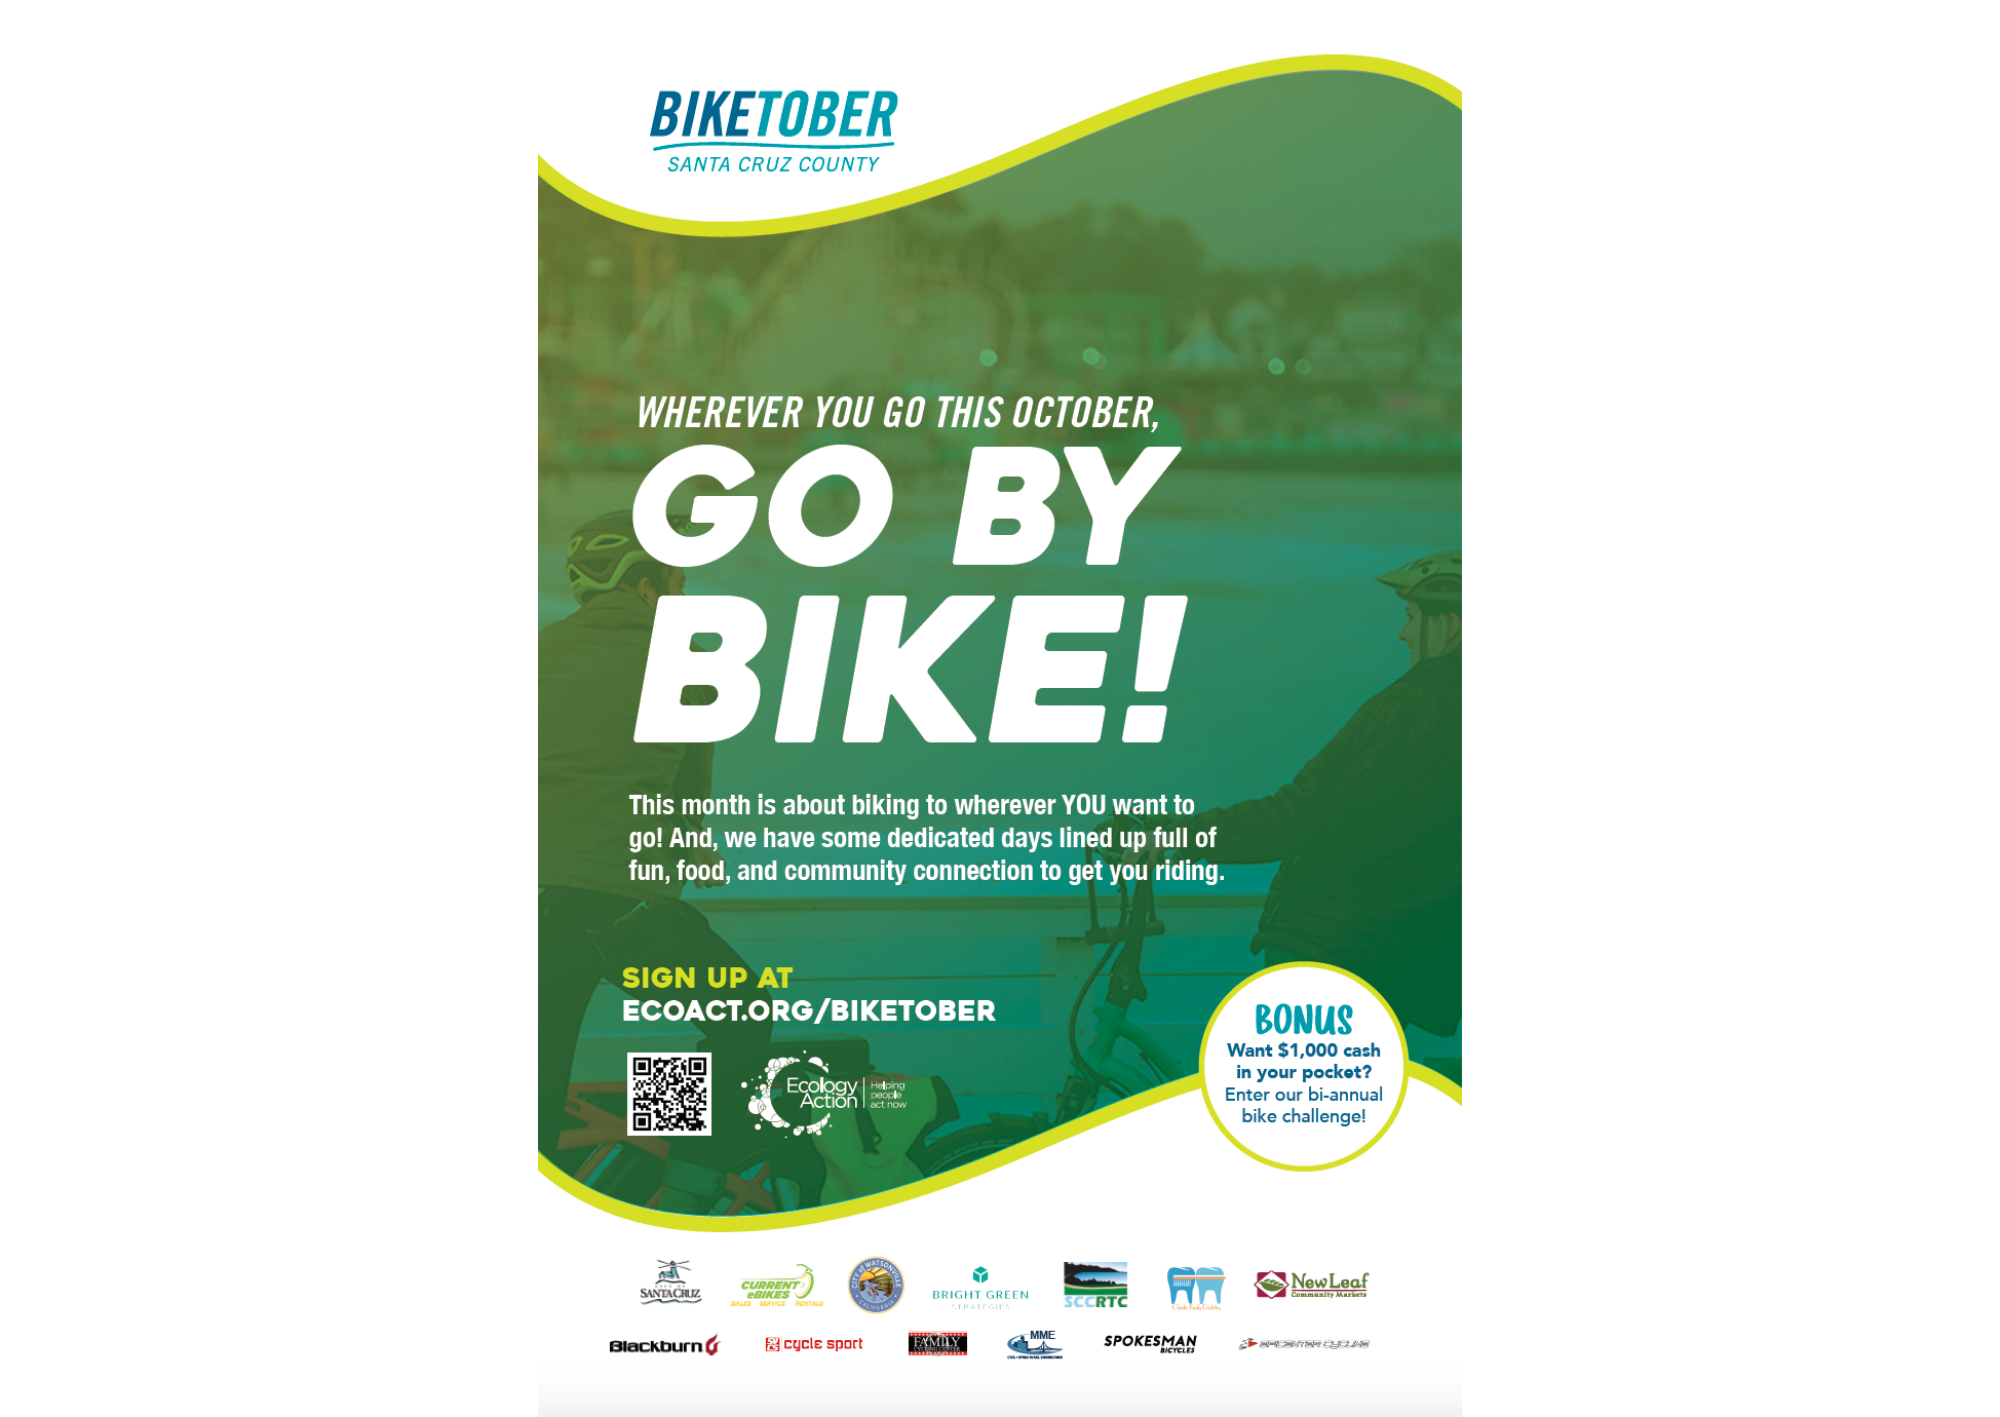 Biketober Santa Cruz County poster with a green blue overlay theme. Text reads 'where you go this October, go by bike!'.